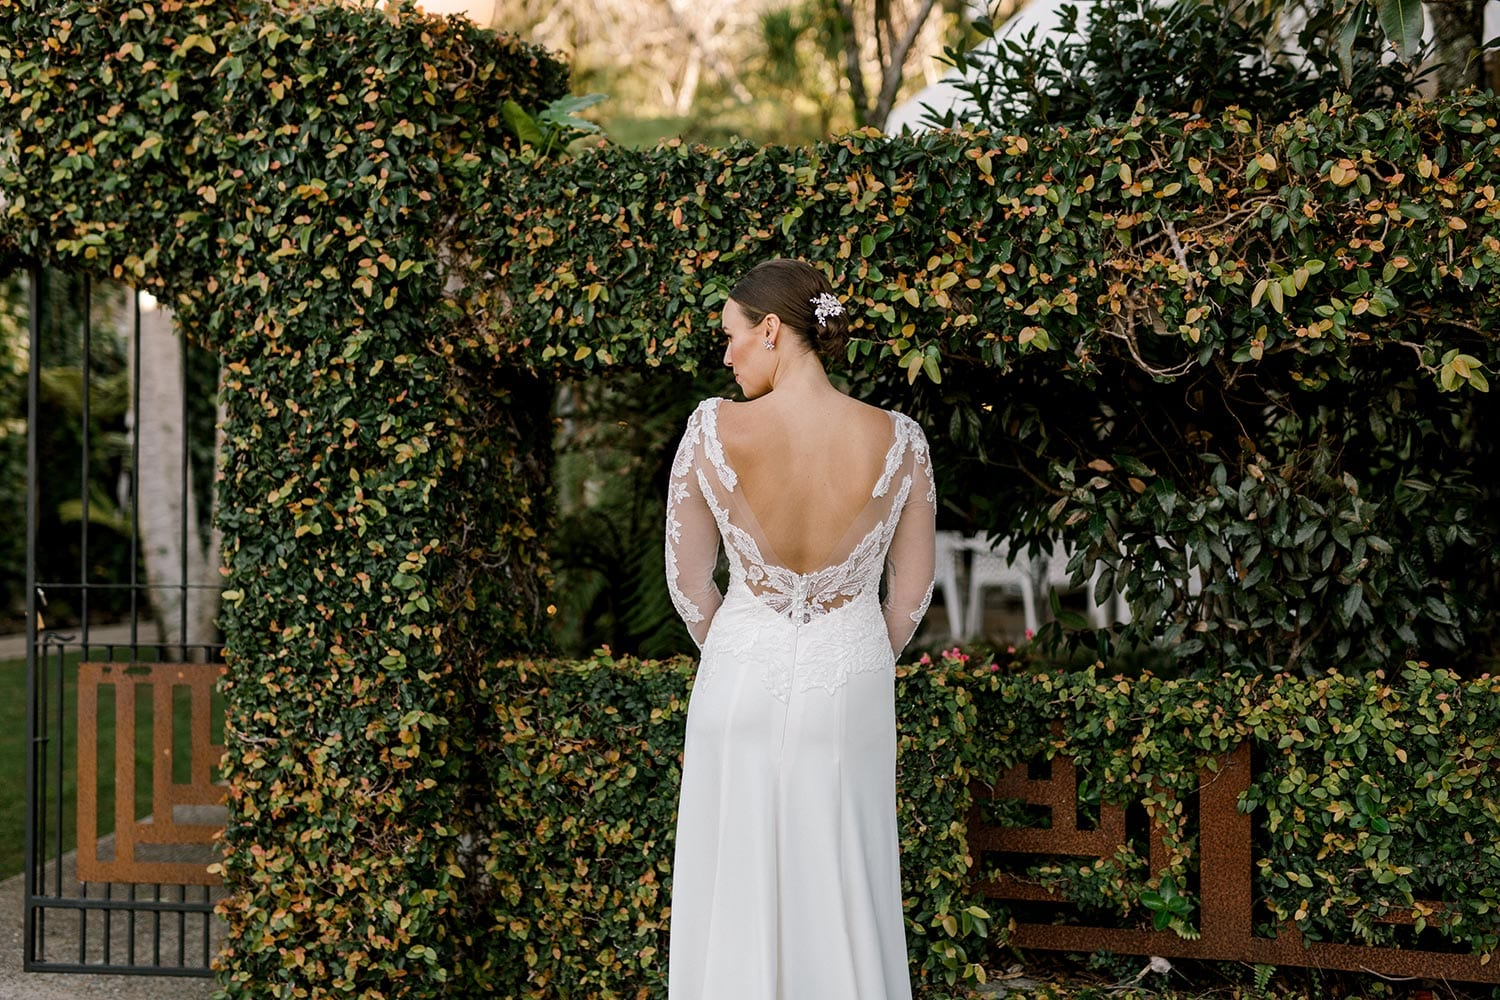 Ariel Wedding Dress from Vinka Design. Wedding dress with illusion scoop neckline & sheer low back with beaded lace. Long, fitted lace sleeves with pearl buttons & A-line skirt that falls into a train. Detail of dress from the back, photographed at Tui Hills by Emmaline Photography.